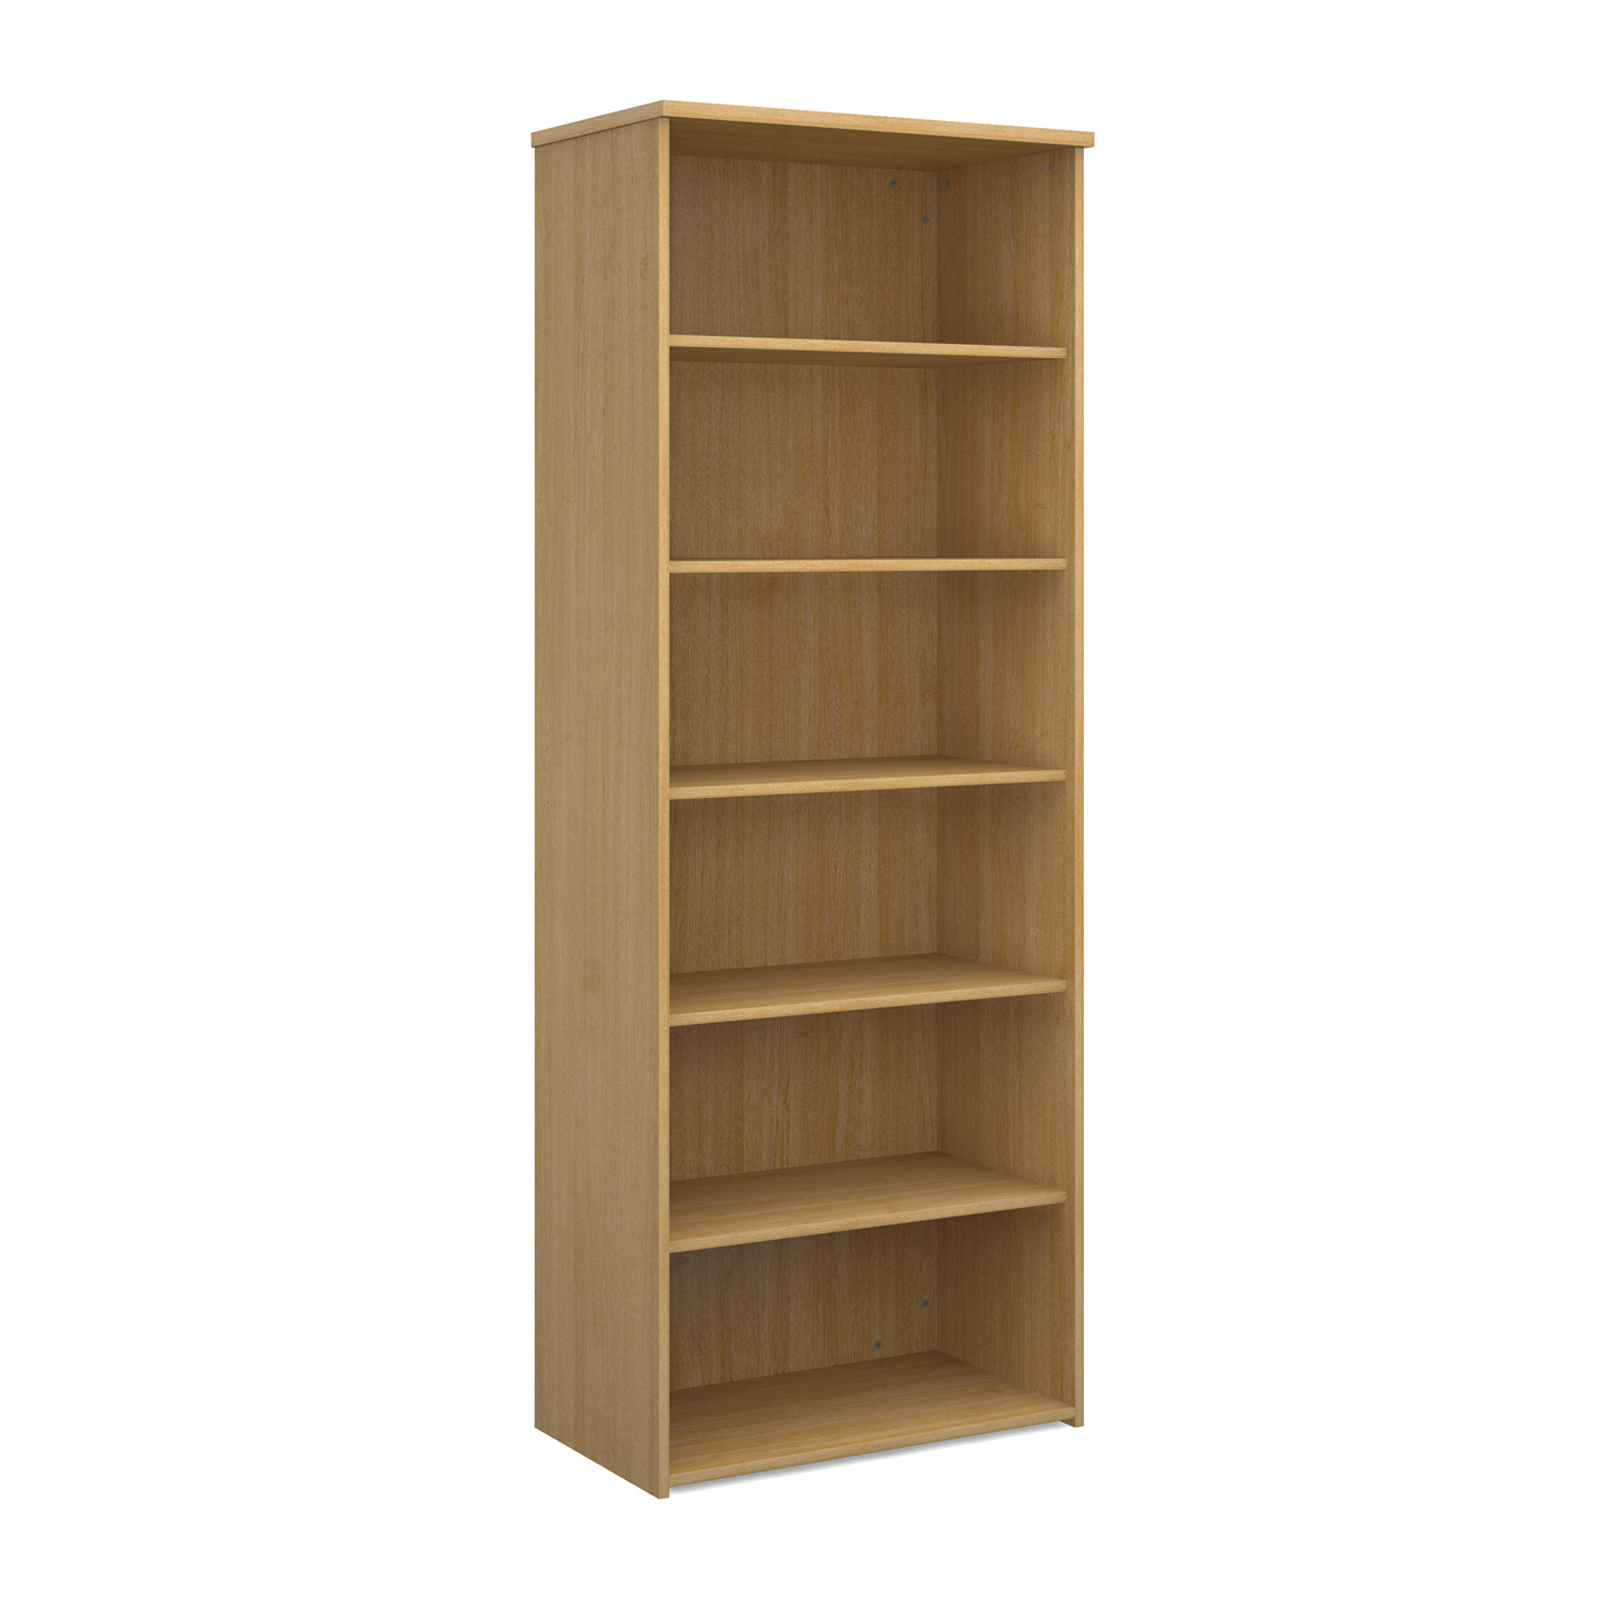 Over 1200mm High Universal bookcase 2140mm high with 5 shelves - oak